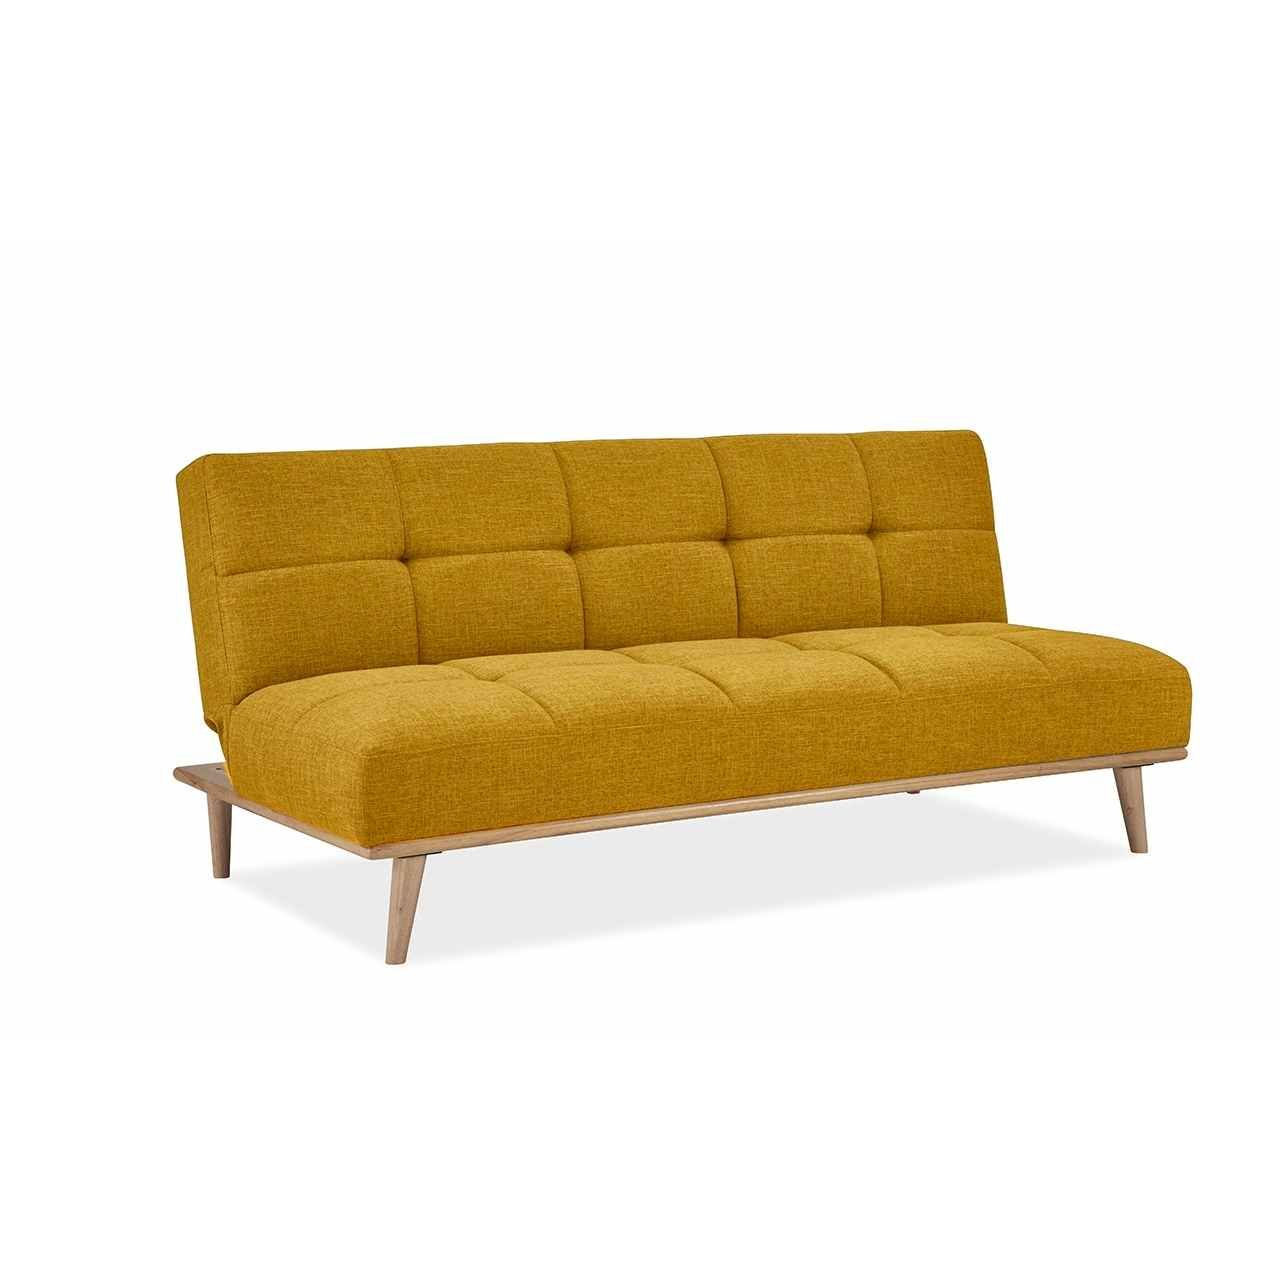 Deco Scandinave Jaune Deco In Paris Banquette Clic Clac Scandinave 3 Places